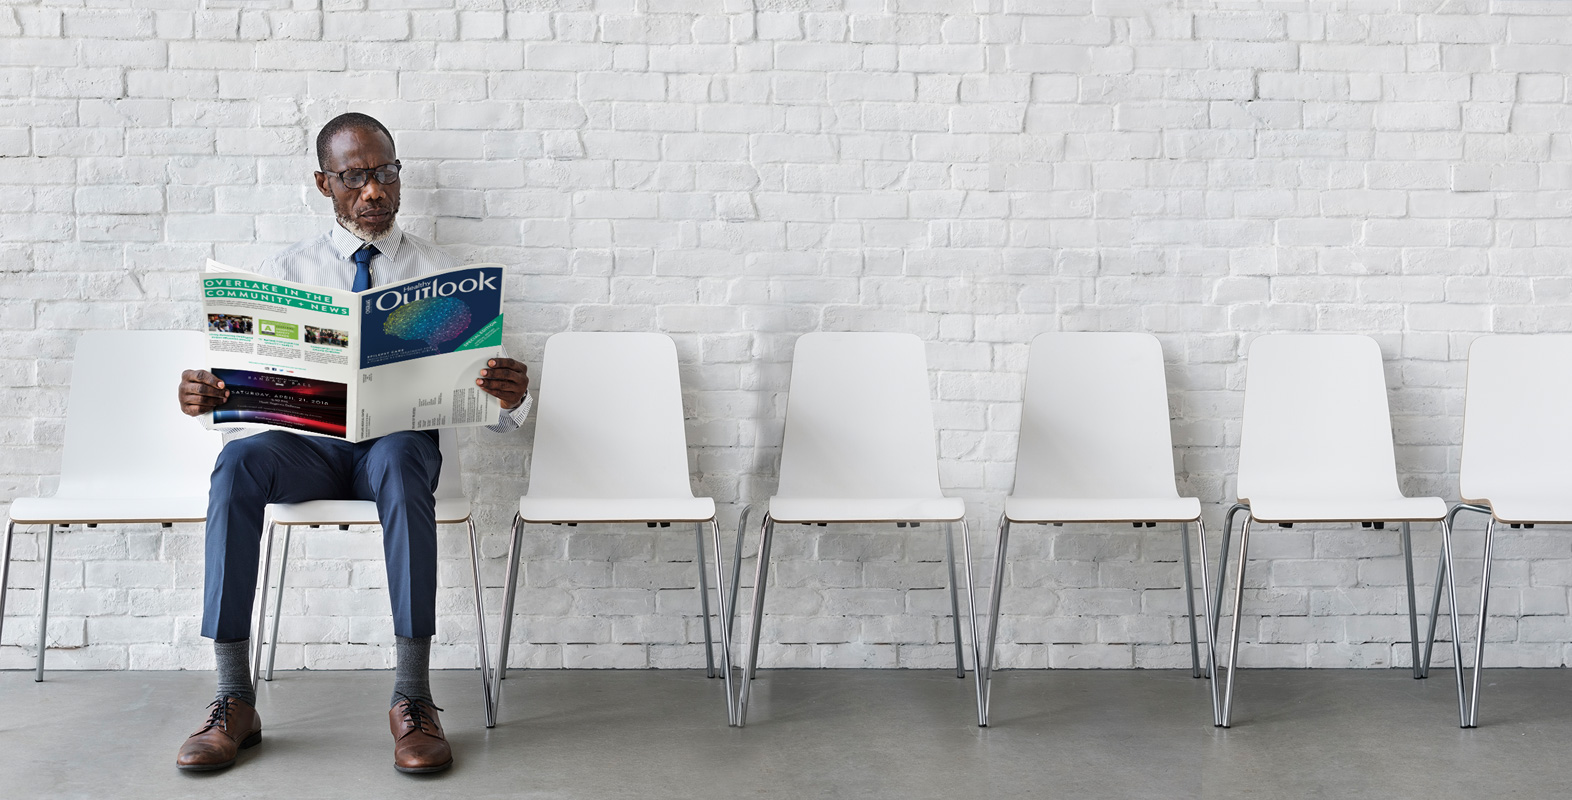 Man reading issue of healthy outlook sitting on white chair